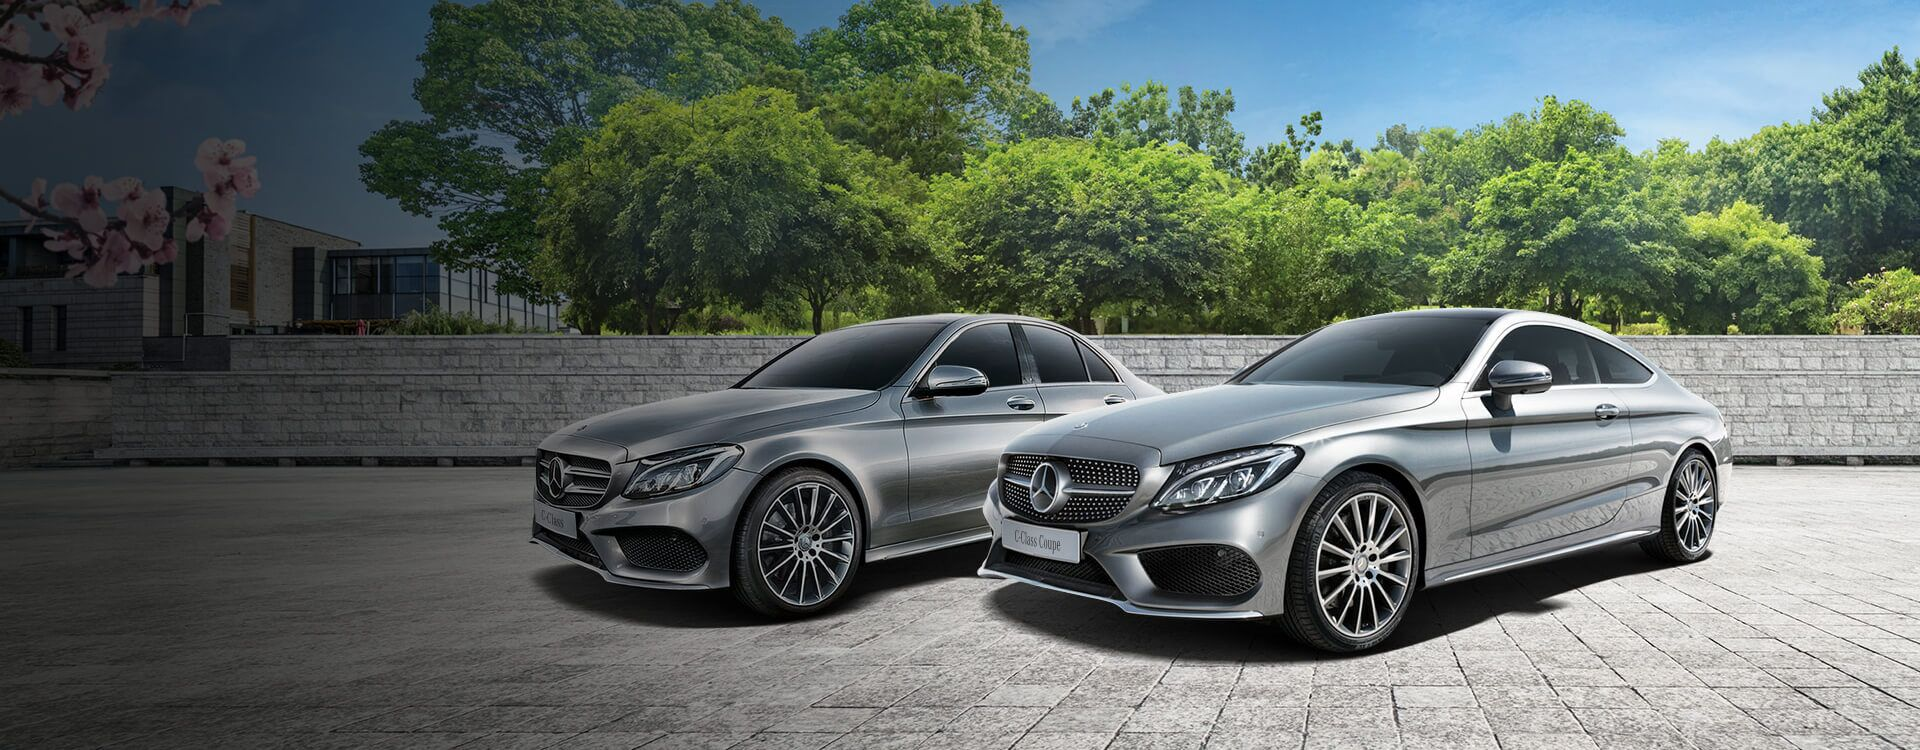 Mercedes benz dealership san juan tx used cars mercedes for Mercedes benz san juan used cars